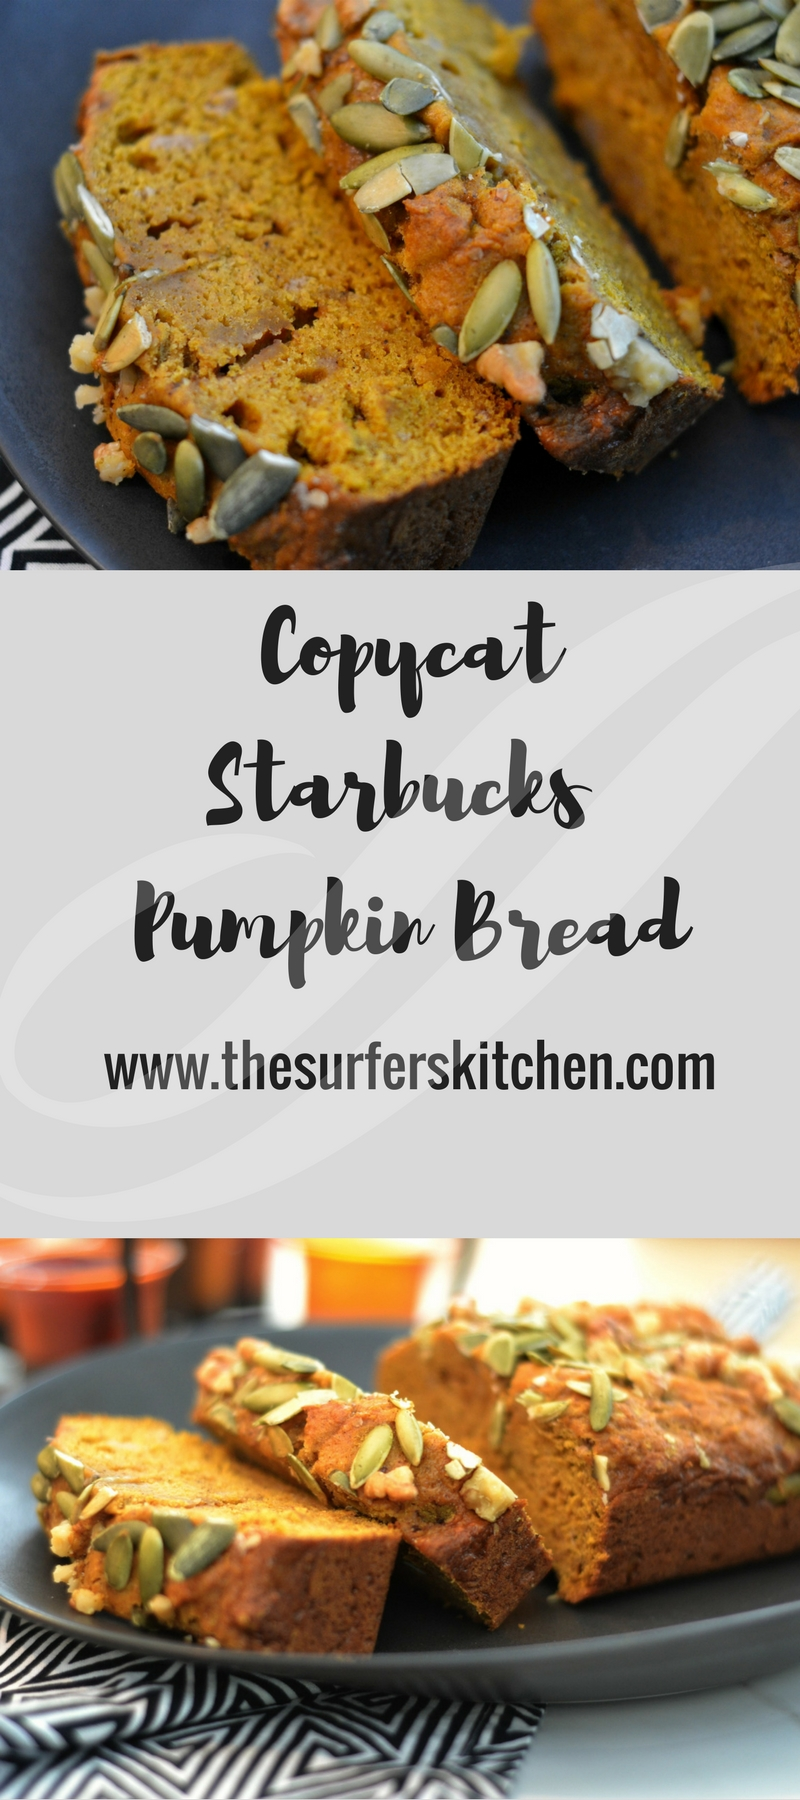 Pumpkin Bread Recipe that rivals Starbucks. Topped with pepitas and walnuts. Yum! | www.thesurferskitchen.com